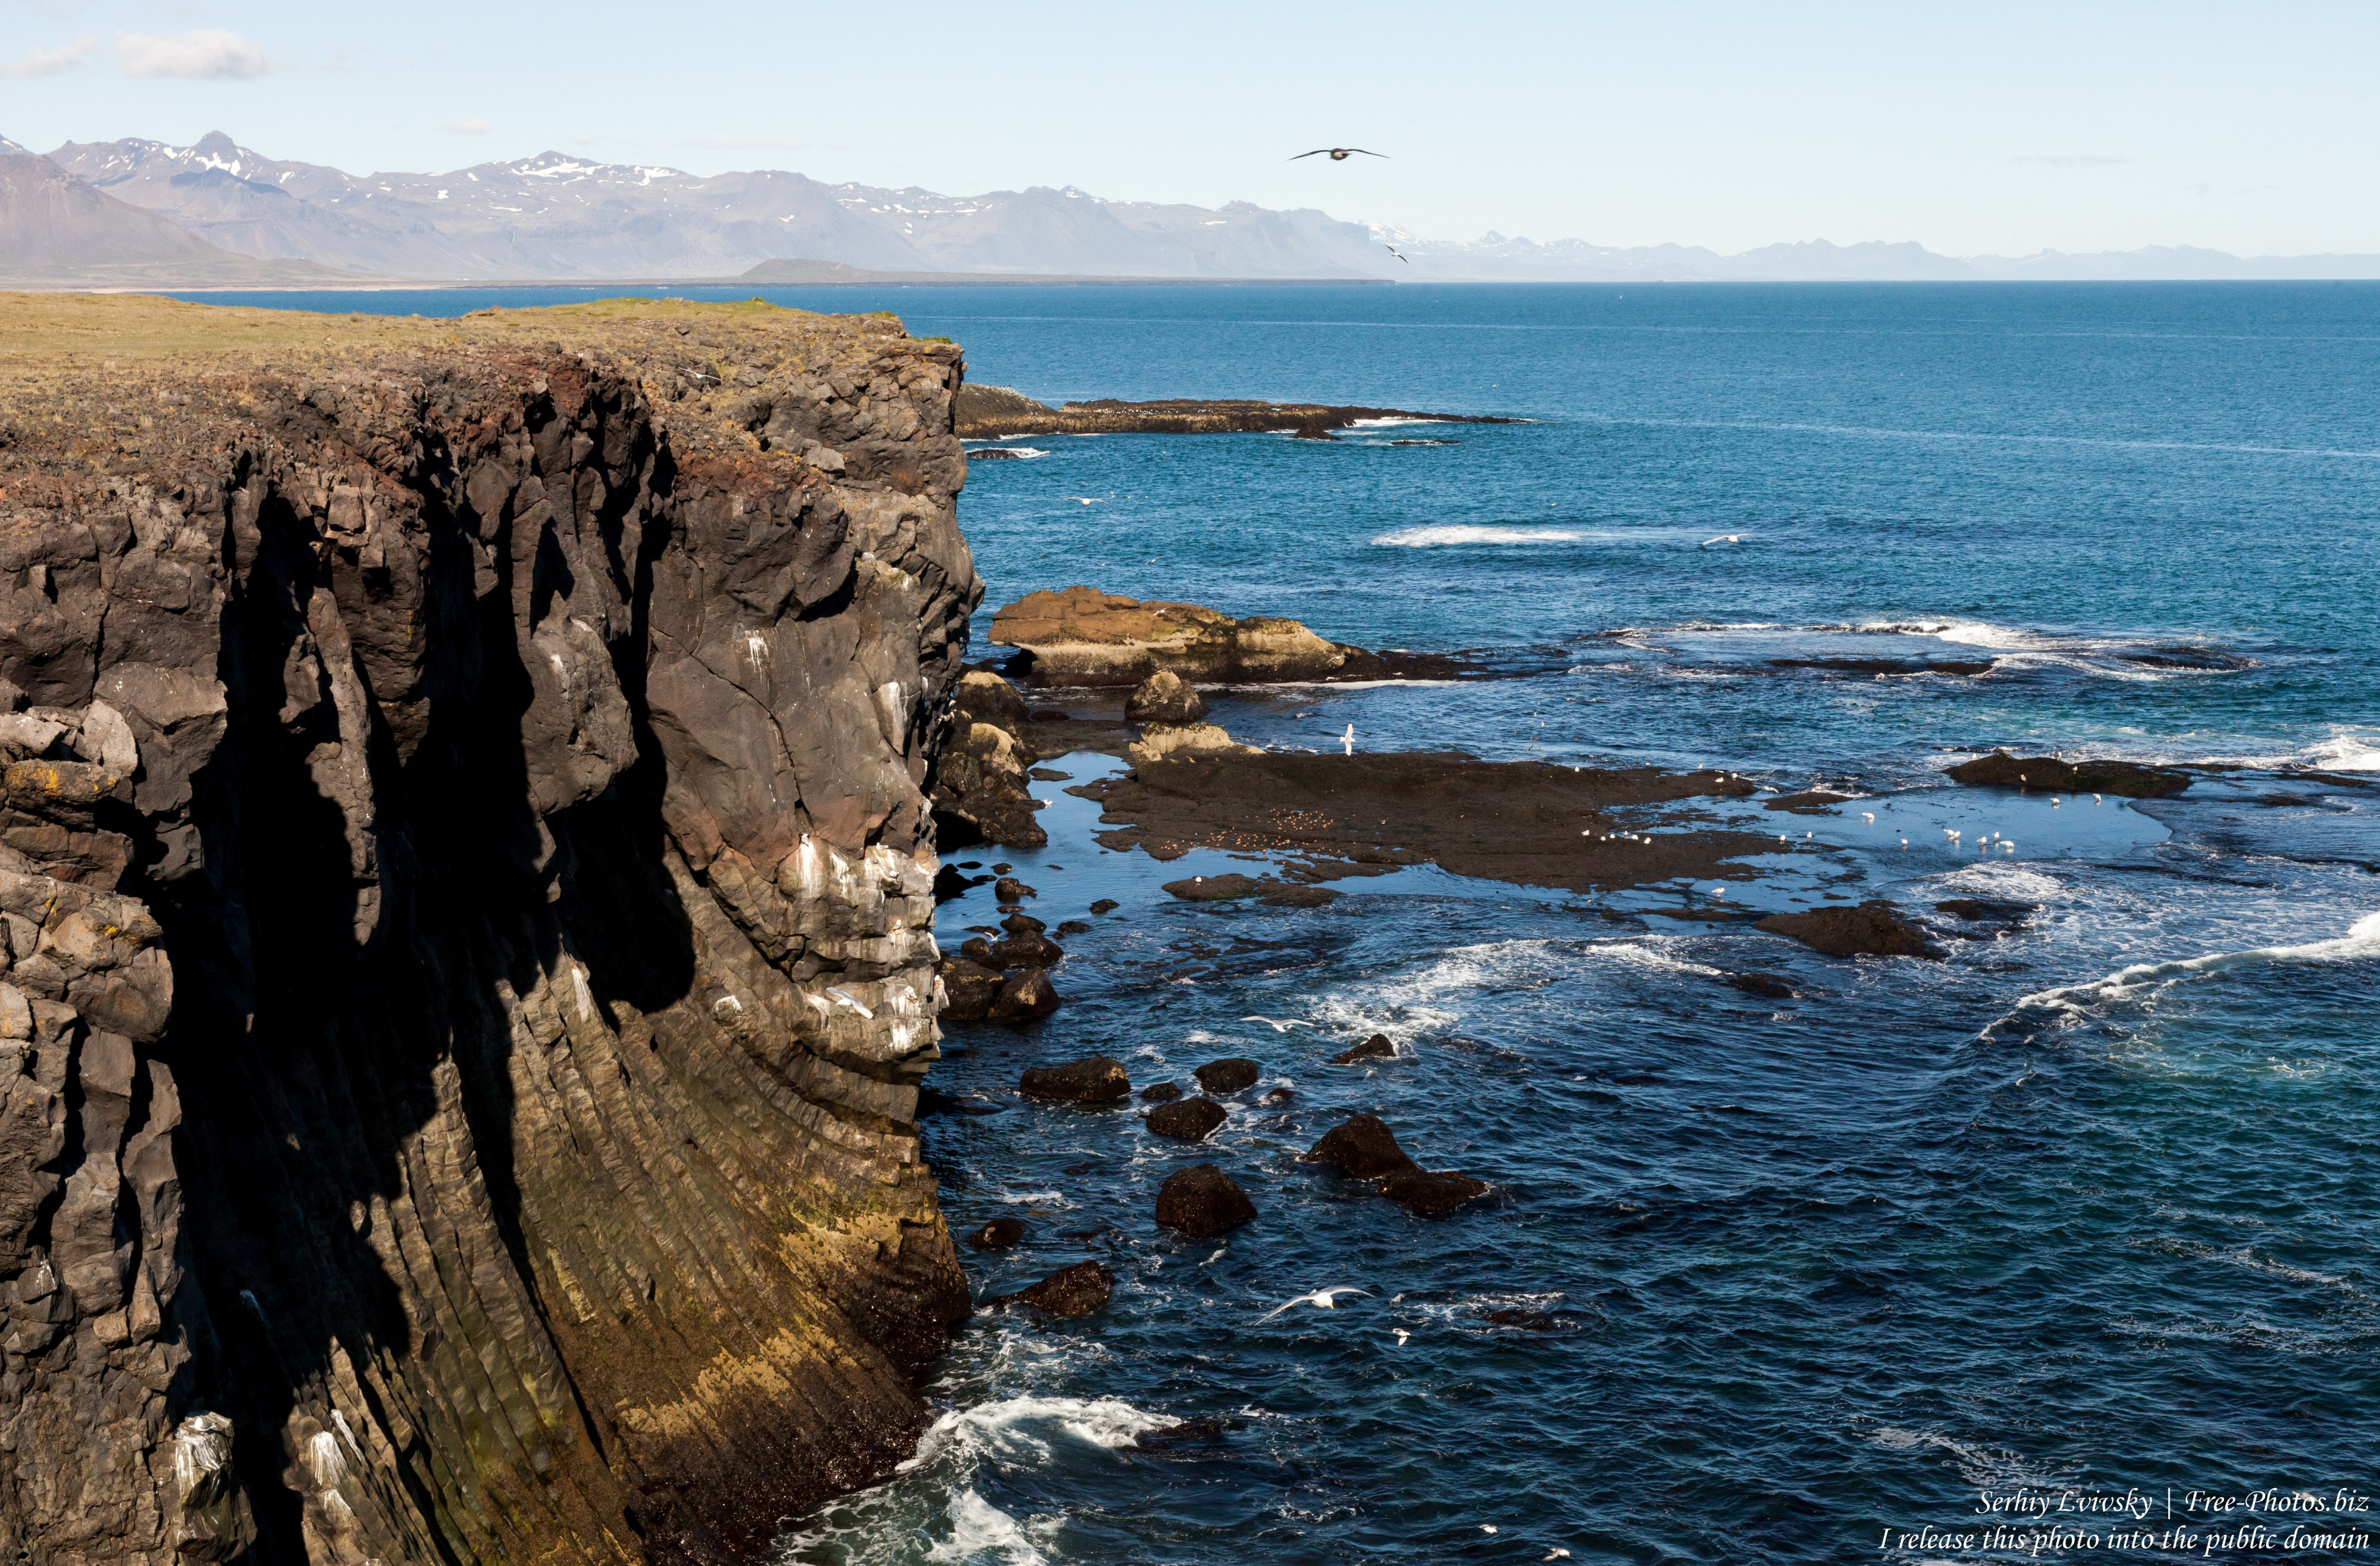 Iceland photographed in May 2019 by Serhiy Lvivsky, picture 74